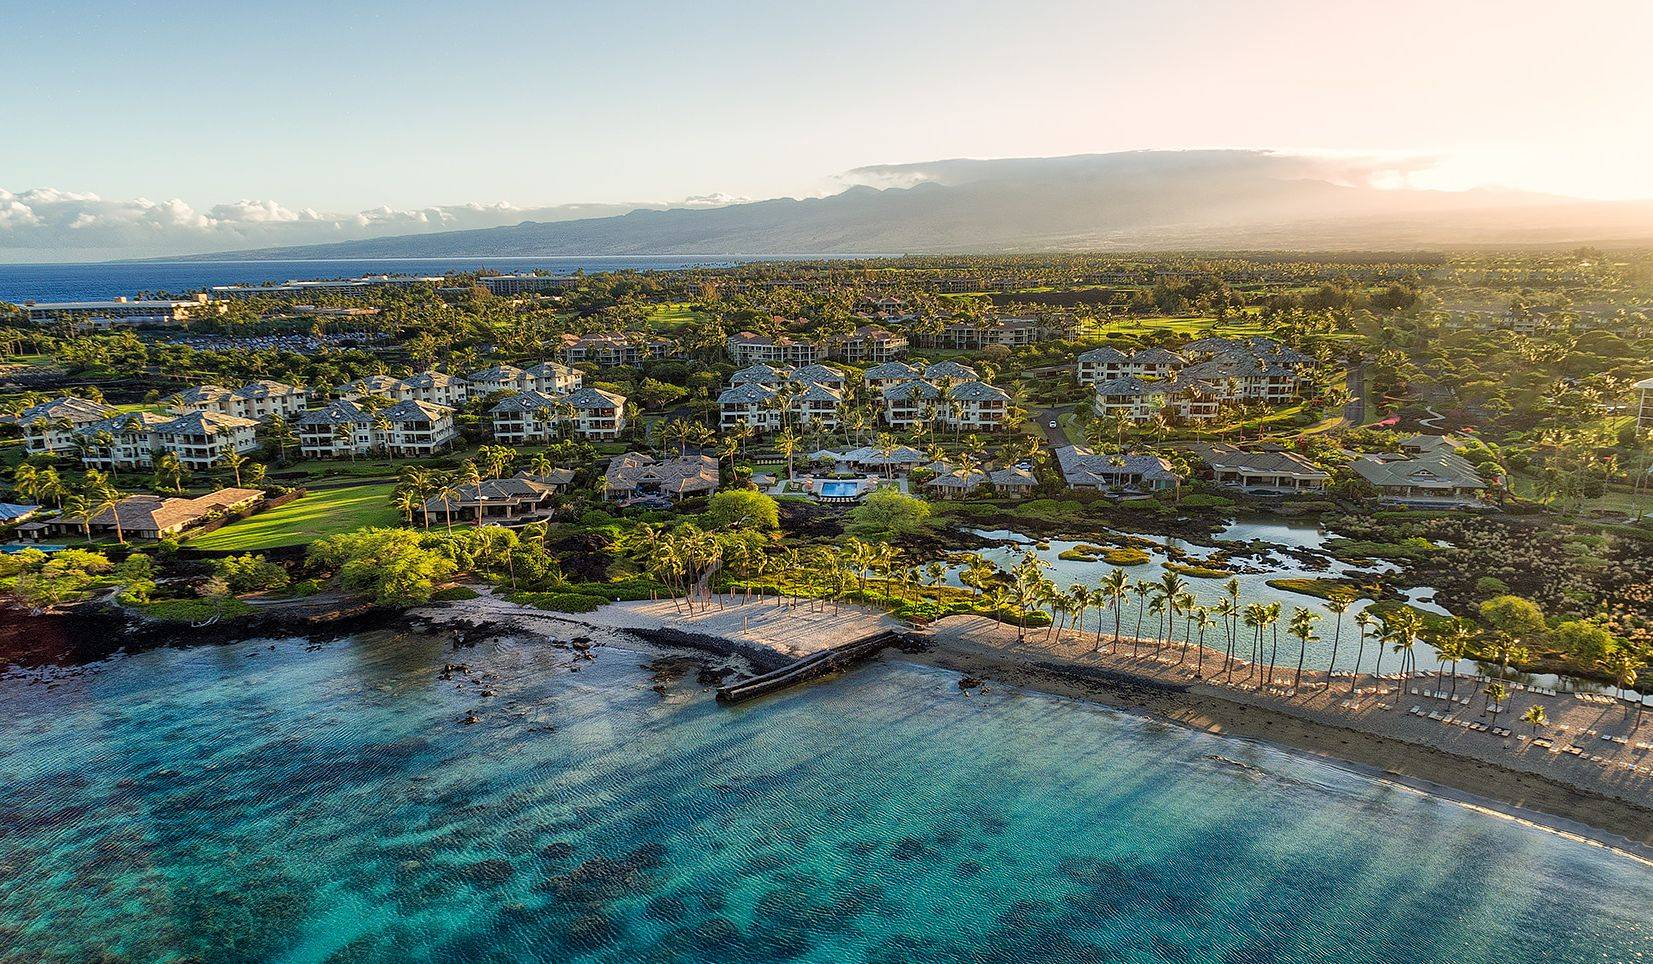 Kolea at Waikoloa & Anaeho'omalu Bay (A-Bay)